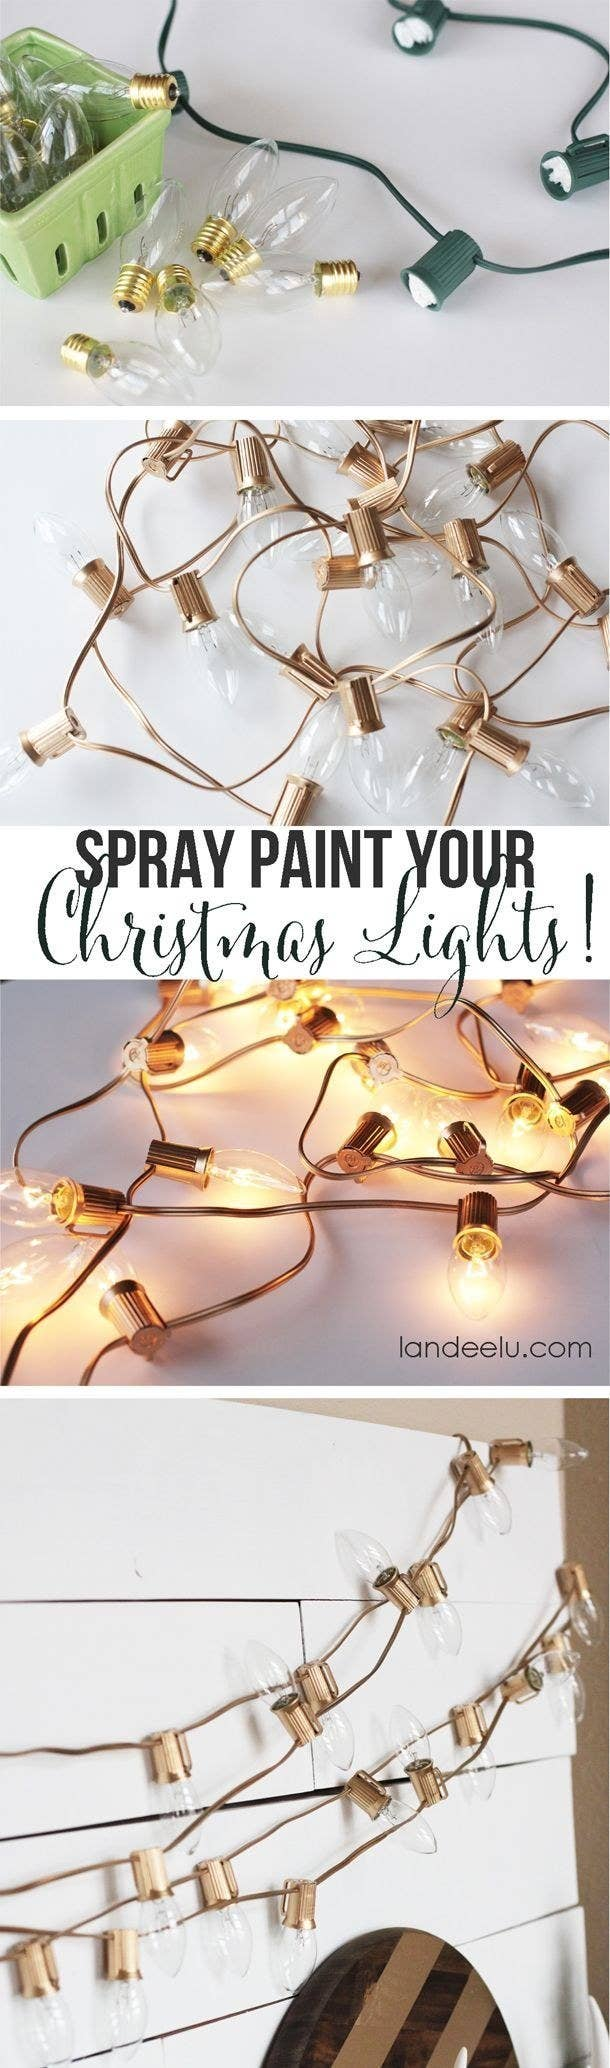 19 Super Cozy Ways To Use String Lights In Your Home Wire Led Christmas Light Wiring Diagram On 4 Xmas An Spray Paint Green Holiday Bulbs Gold Get A Polished Look